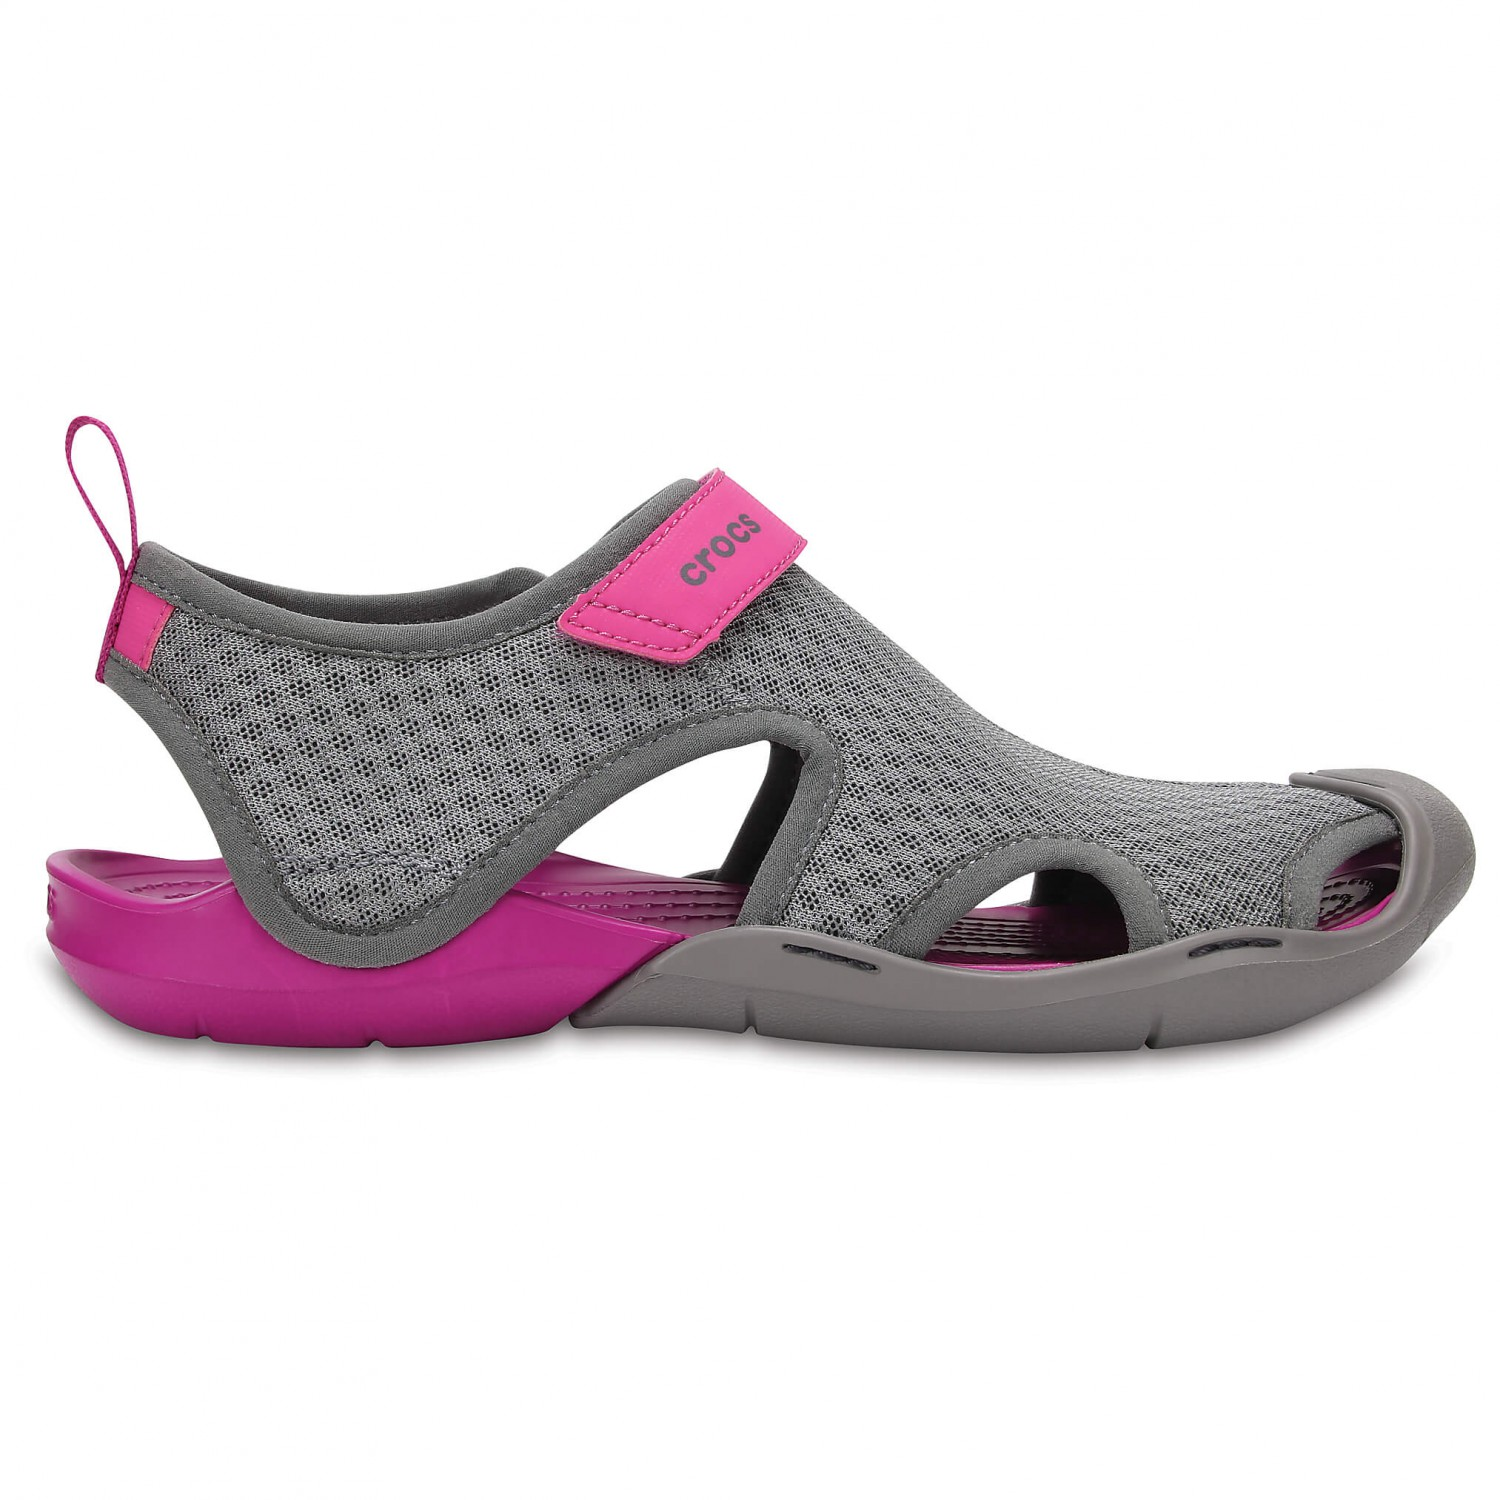 4289e649b9ebce ... Crocs - Women s Swiftwater Mesh Sandal - Outdoor sandals ...